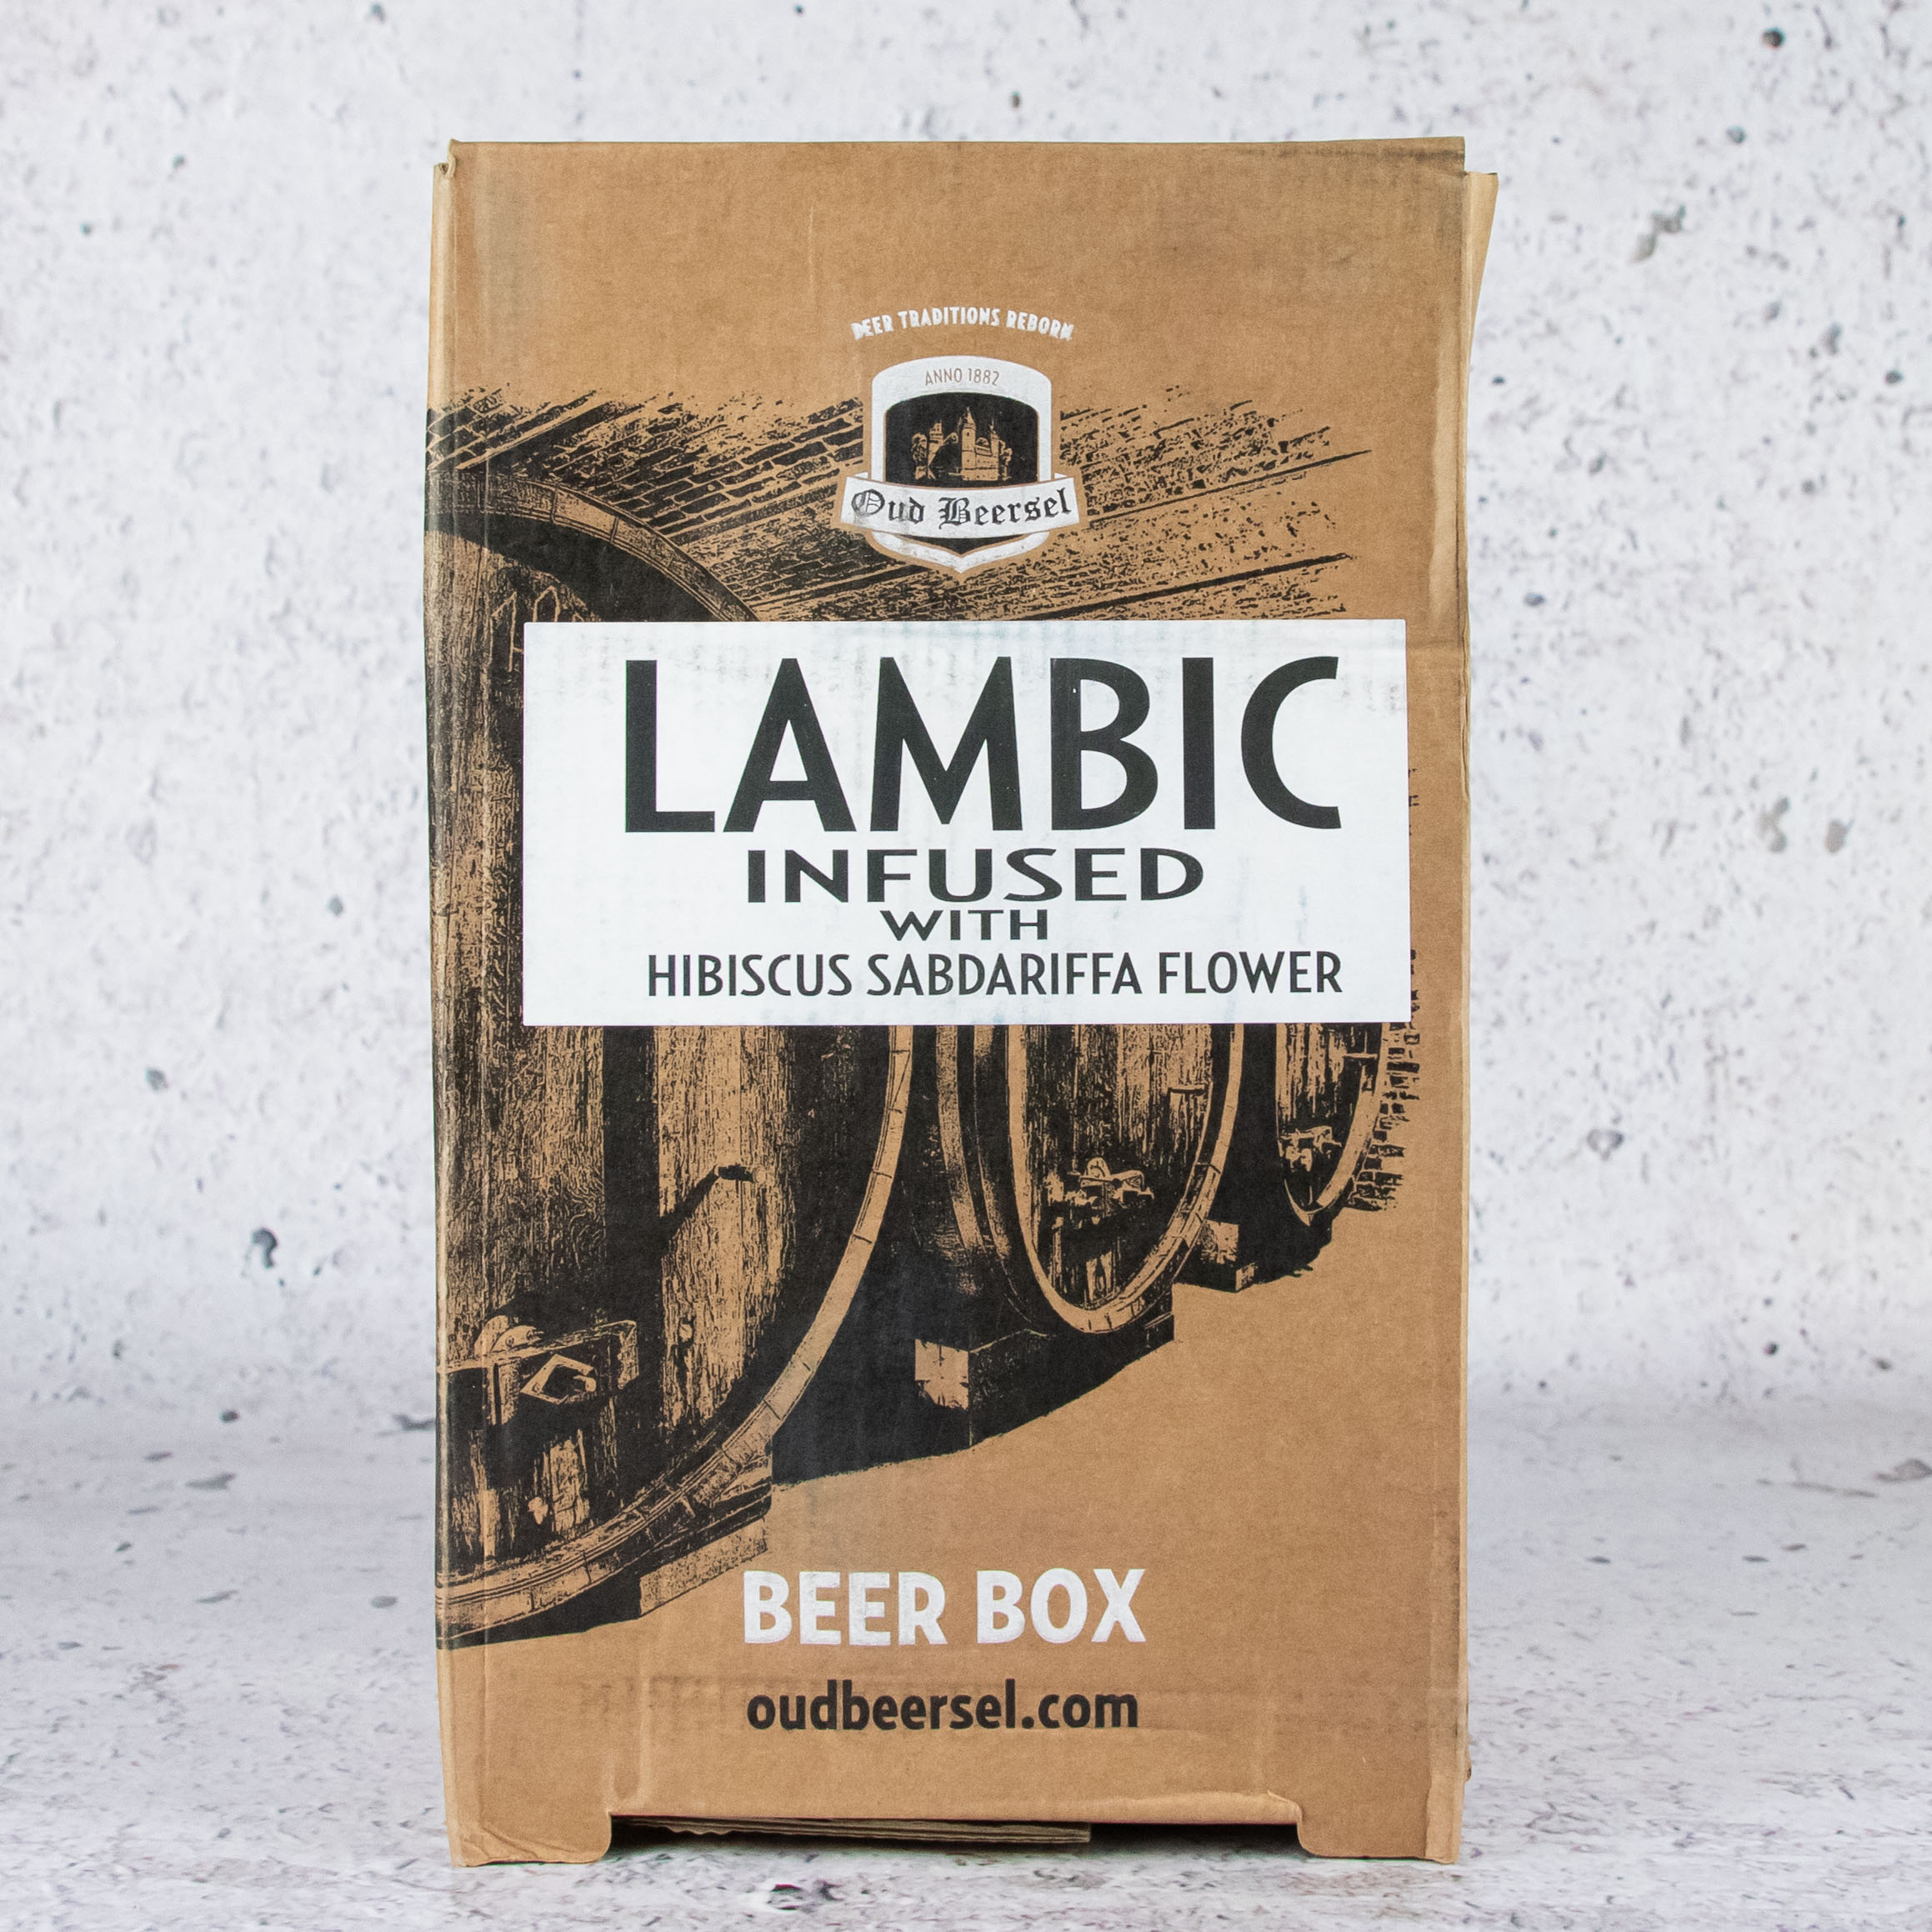 Oud Beersel Lambic Infused with Hibiscus Sabdariffa Flower 3.1 Litre Box